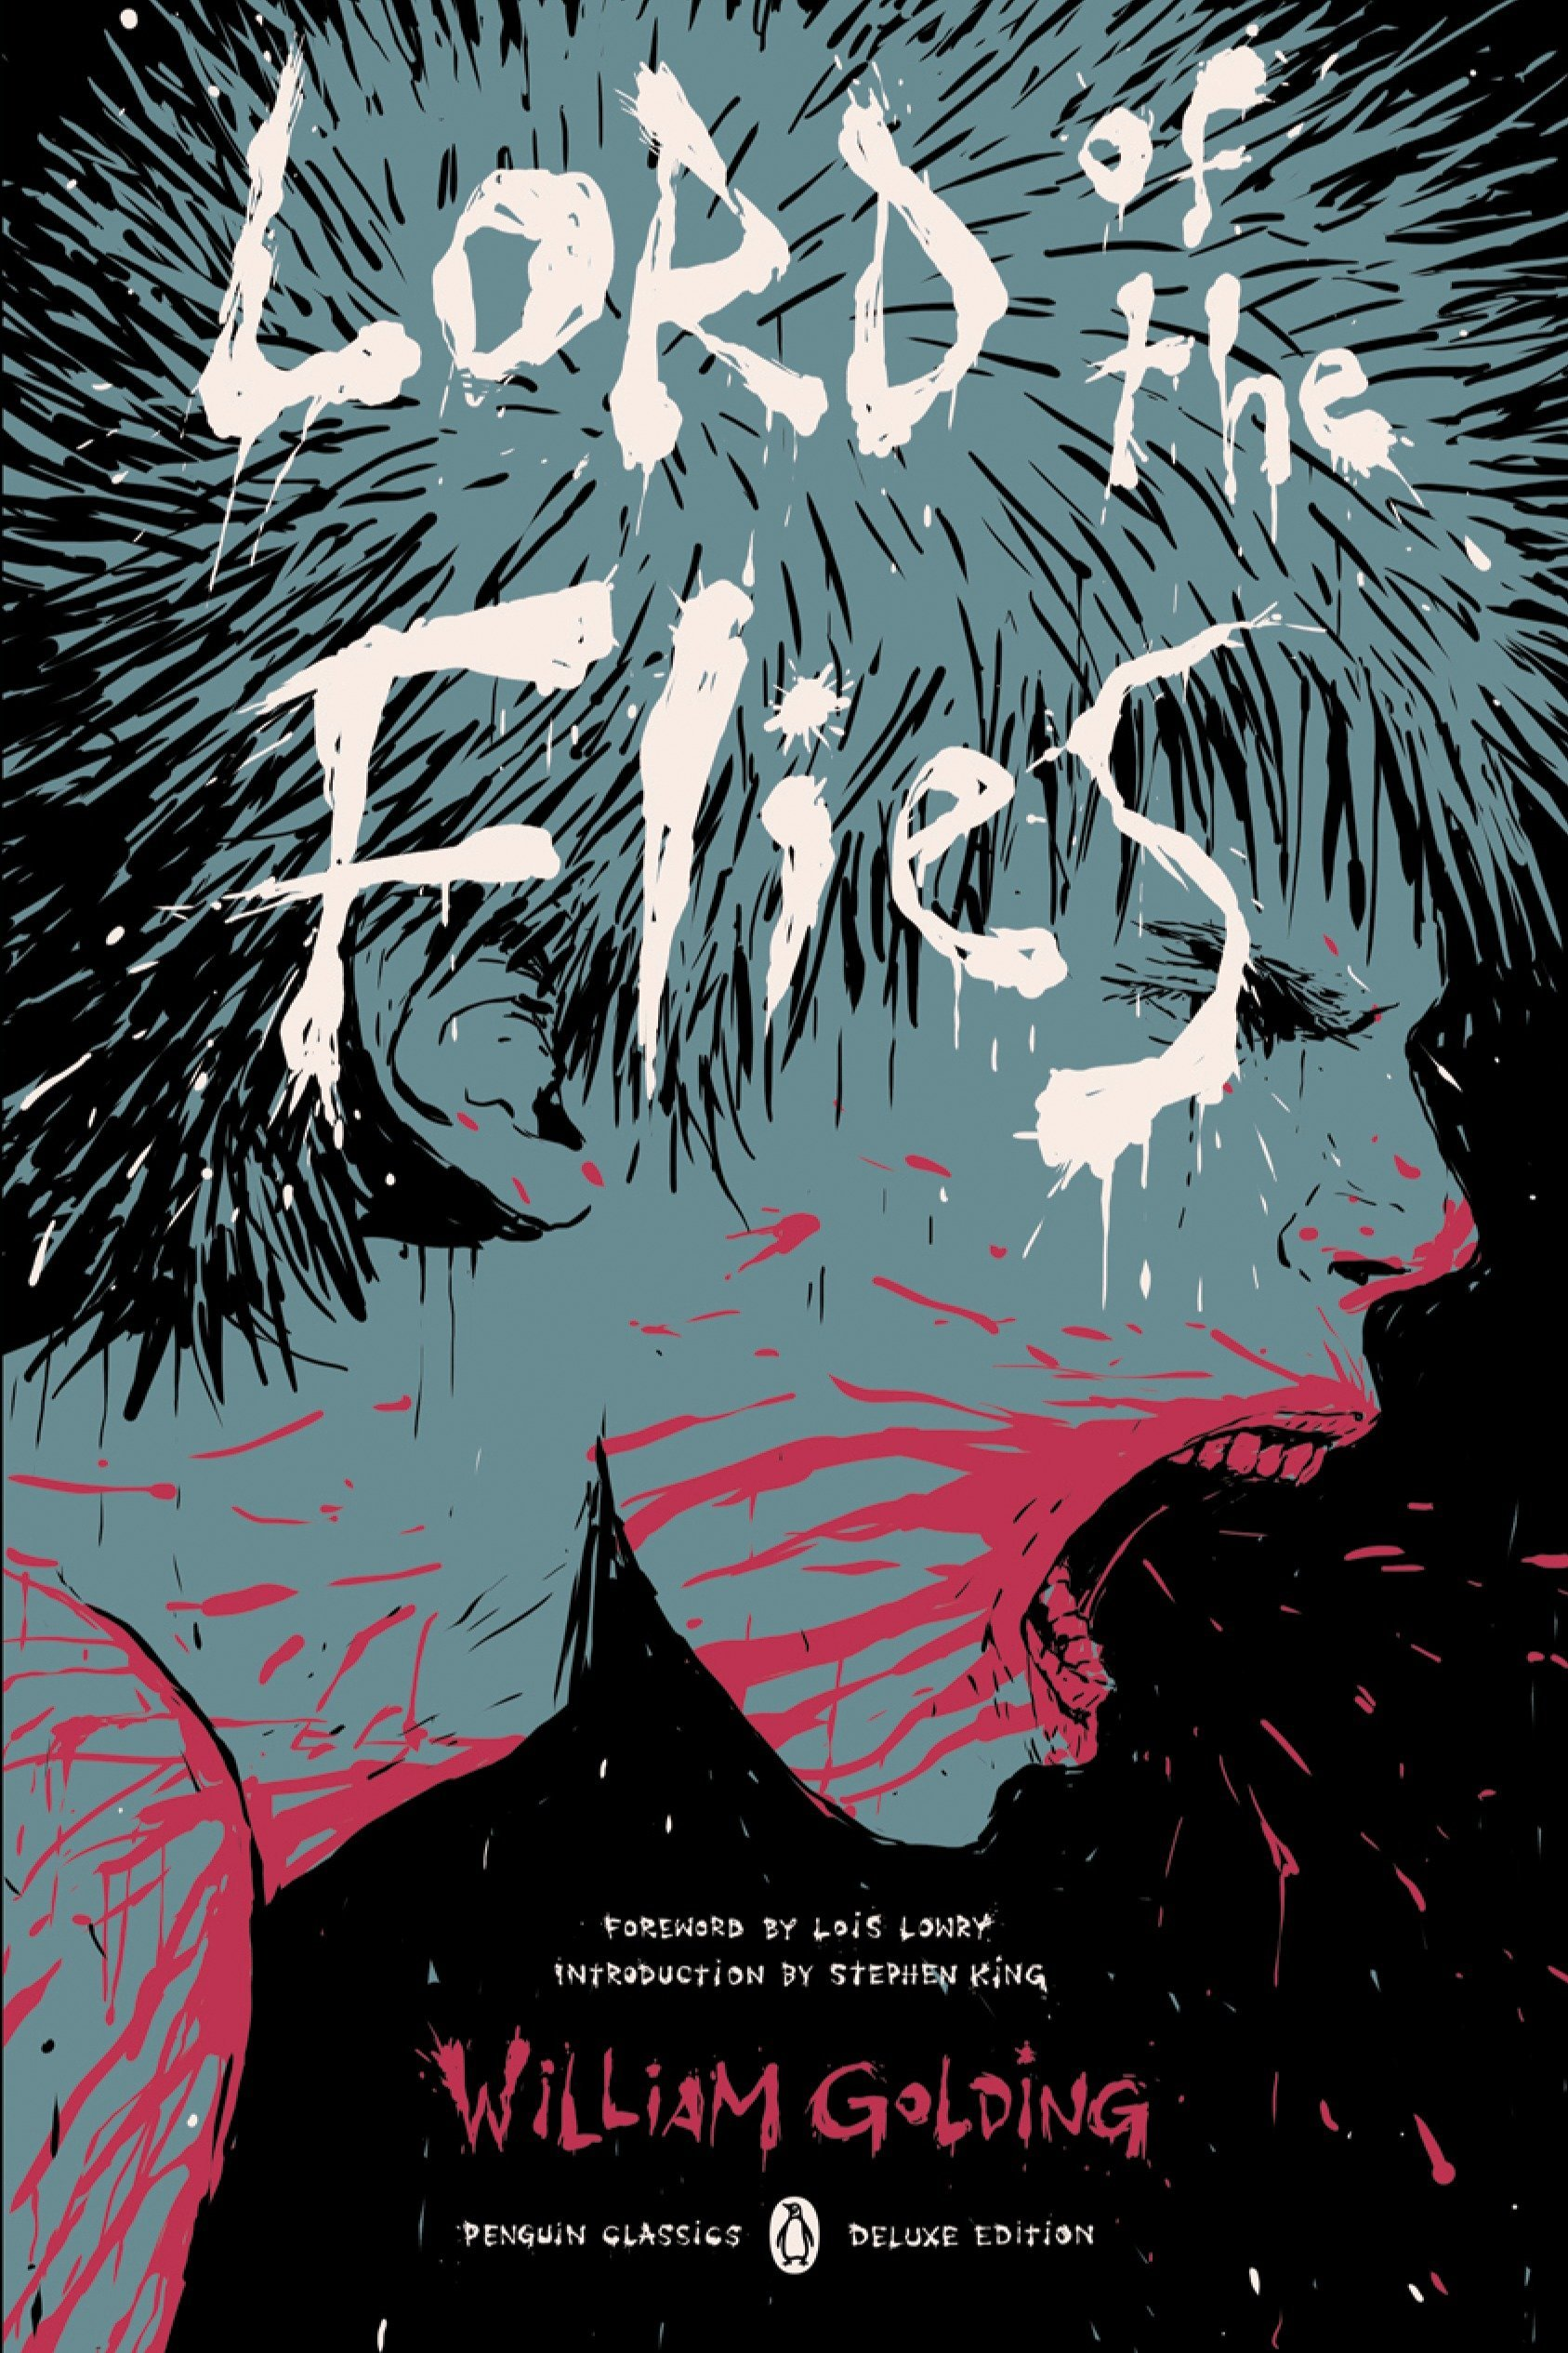 Lord of the Flies: (penguin Classics Deluxe Edition) (Penguin Classics  Deluxe Editions): Amazon.co.uk: Sir William Golding, Lois Lowry, E M  Forster, ...